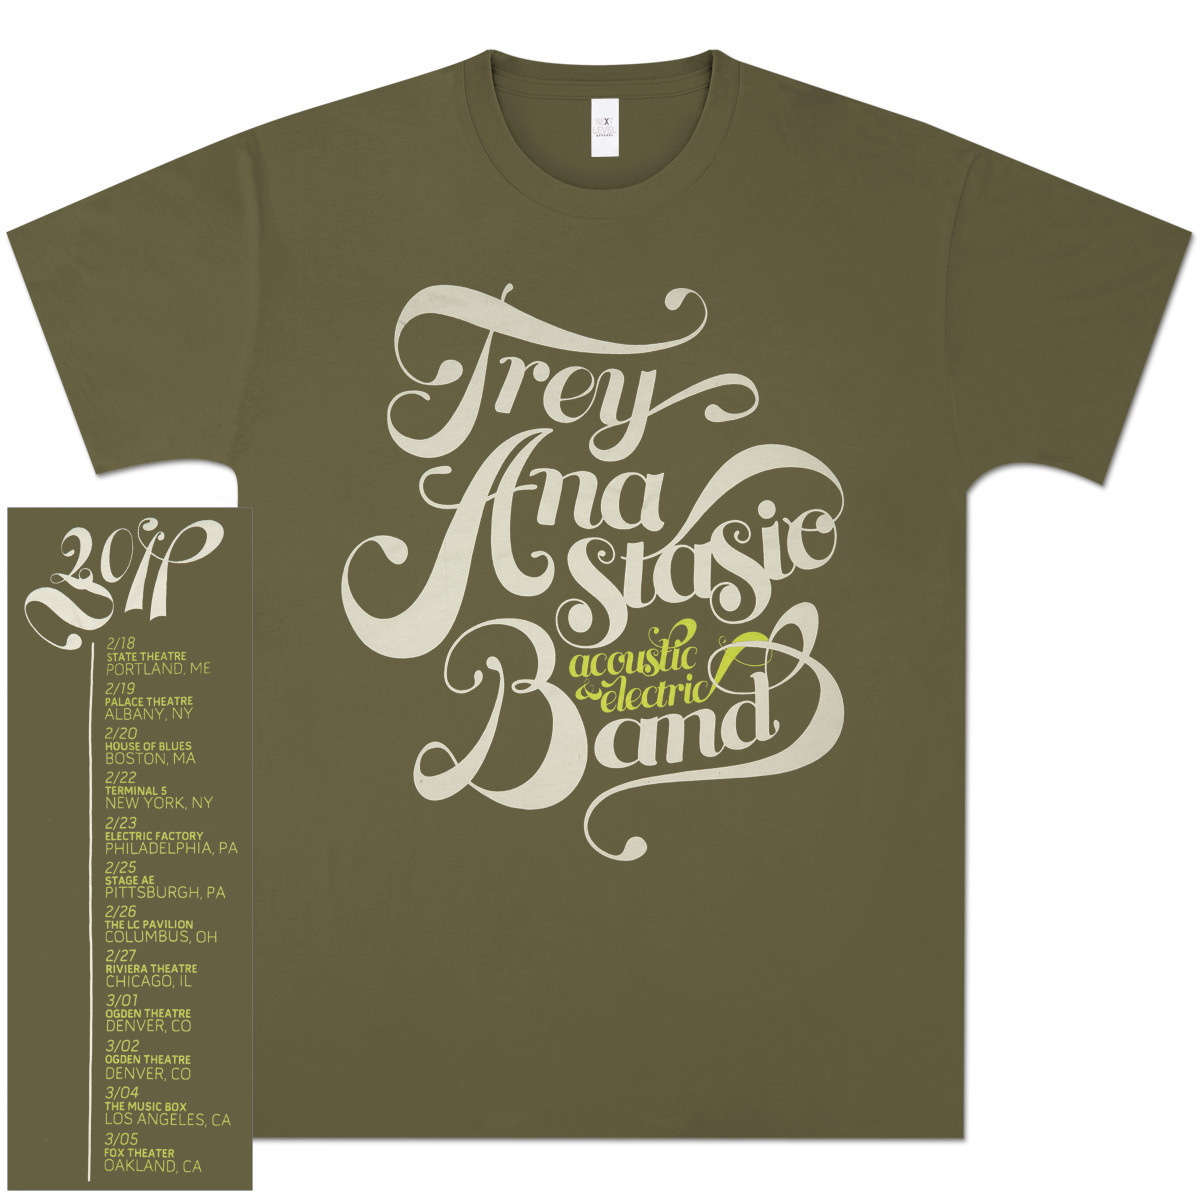 Trey Anastasio Band Acoustic/Electric Swirl on Light Olive